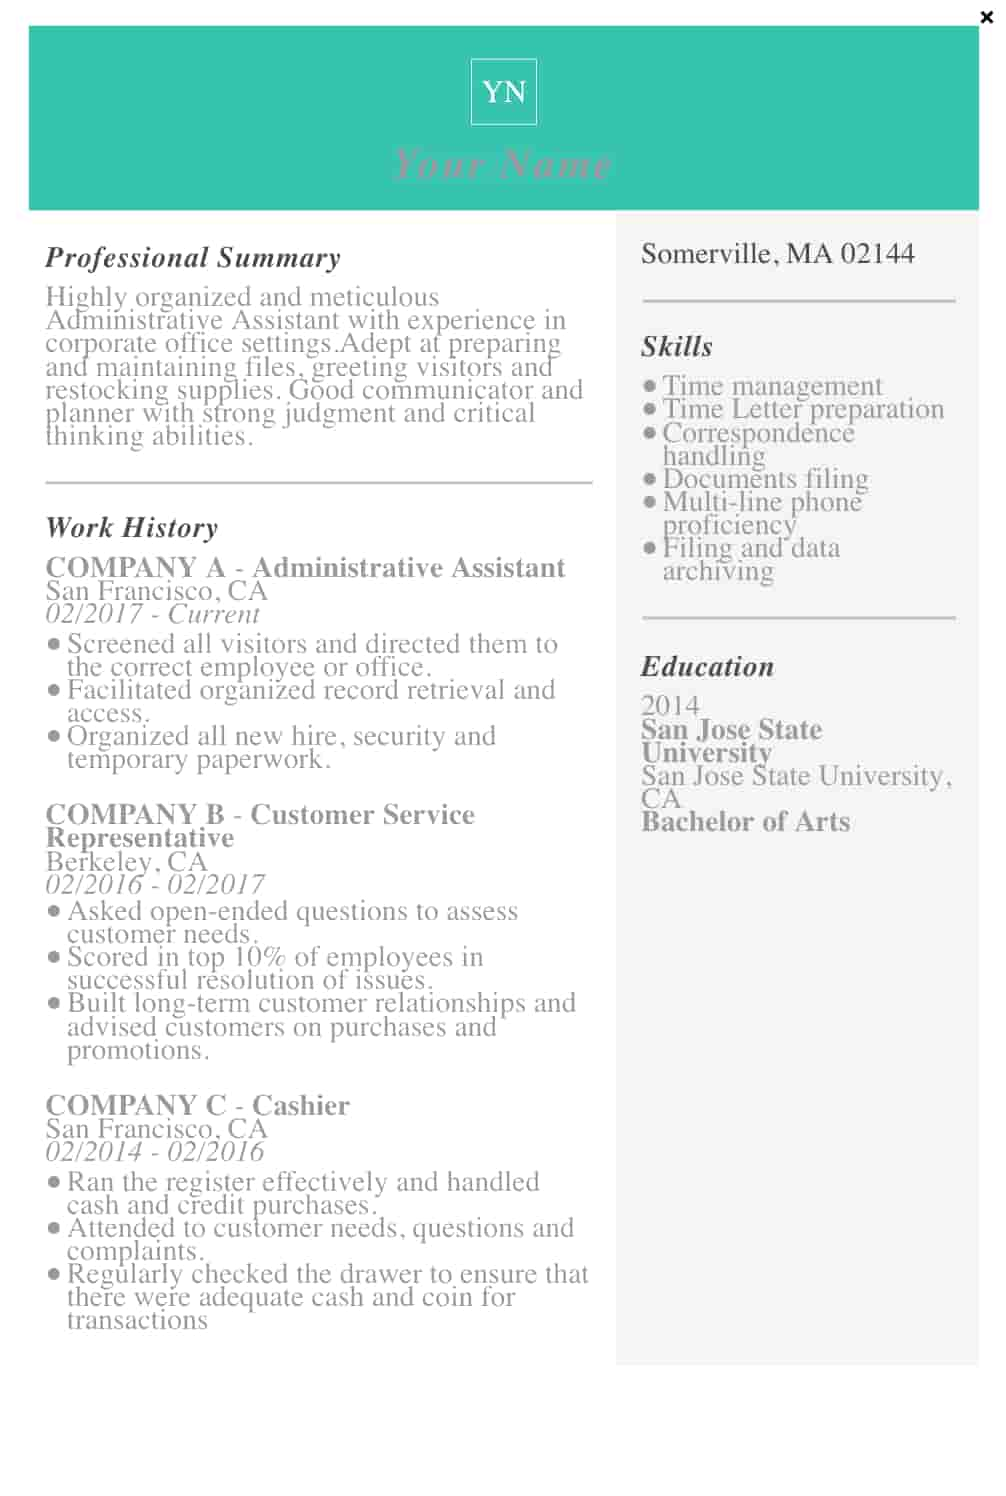 free resume templates for microsoft word to make your own good format screen shot at pm Resume Good Resume Format 2016